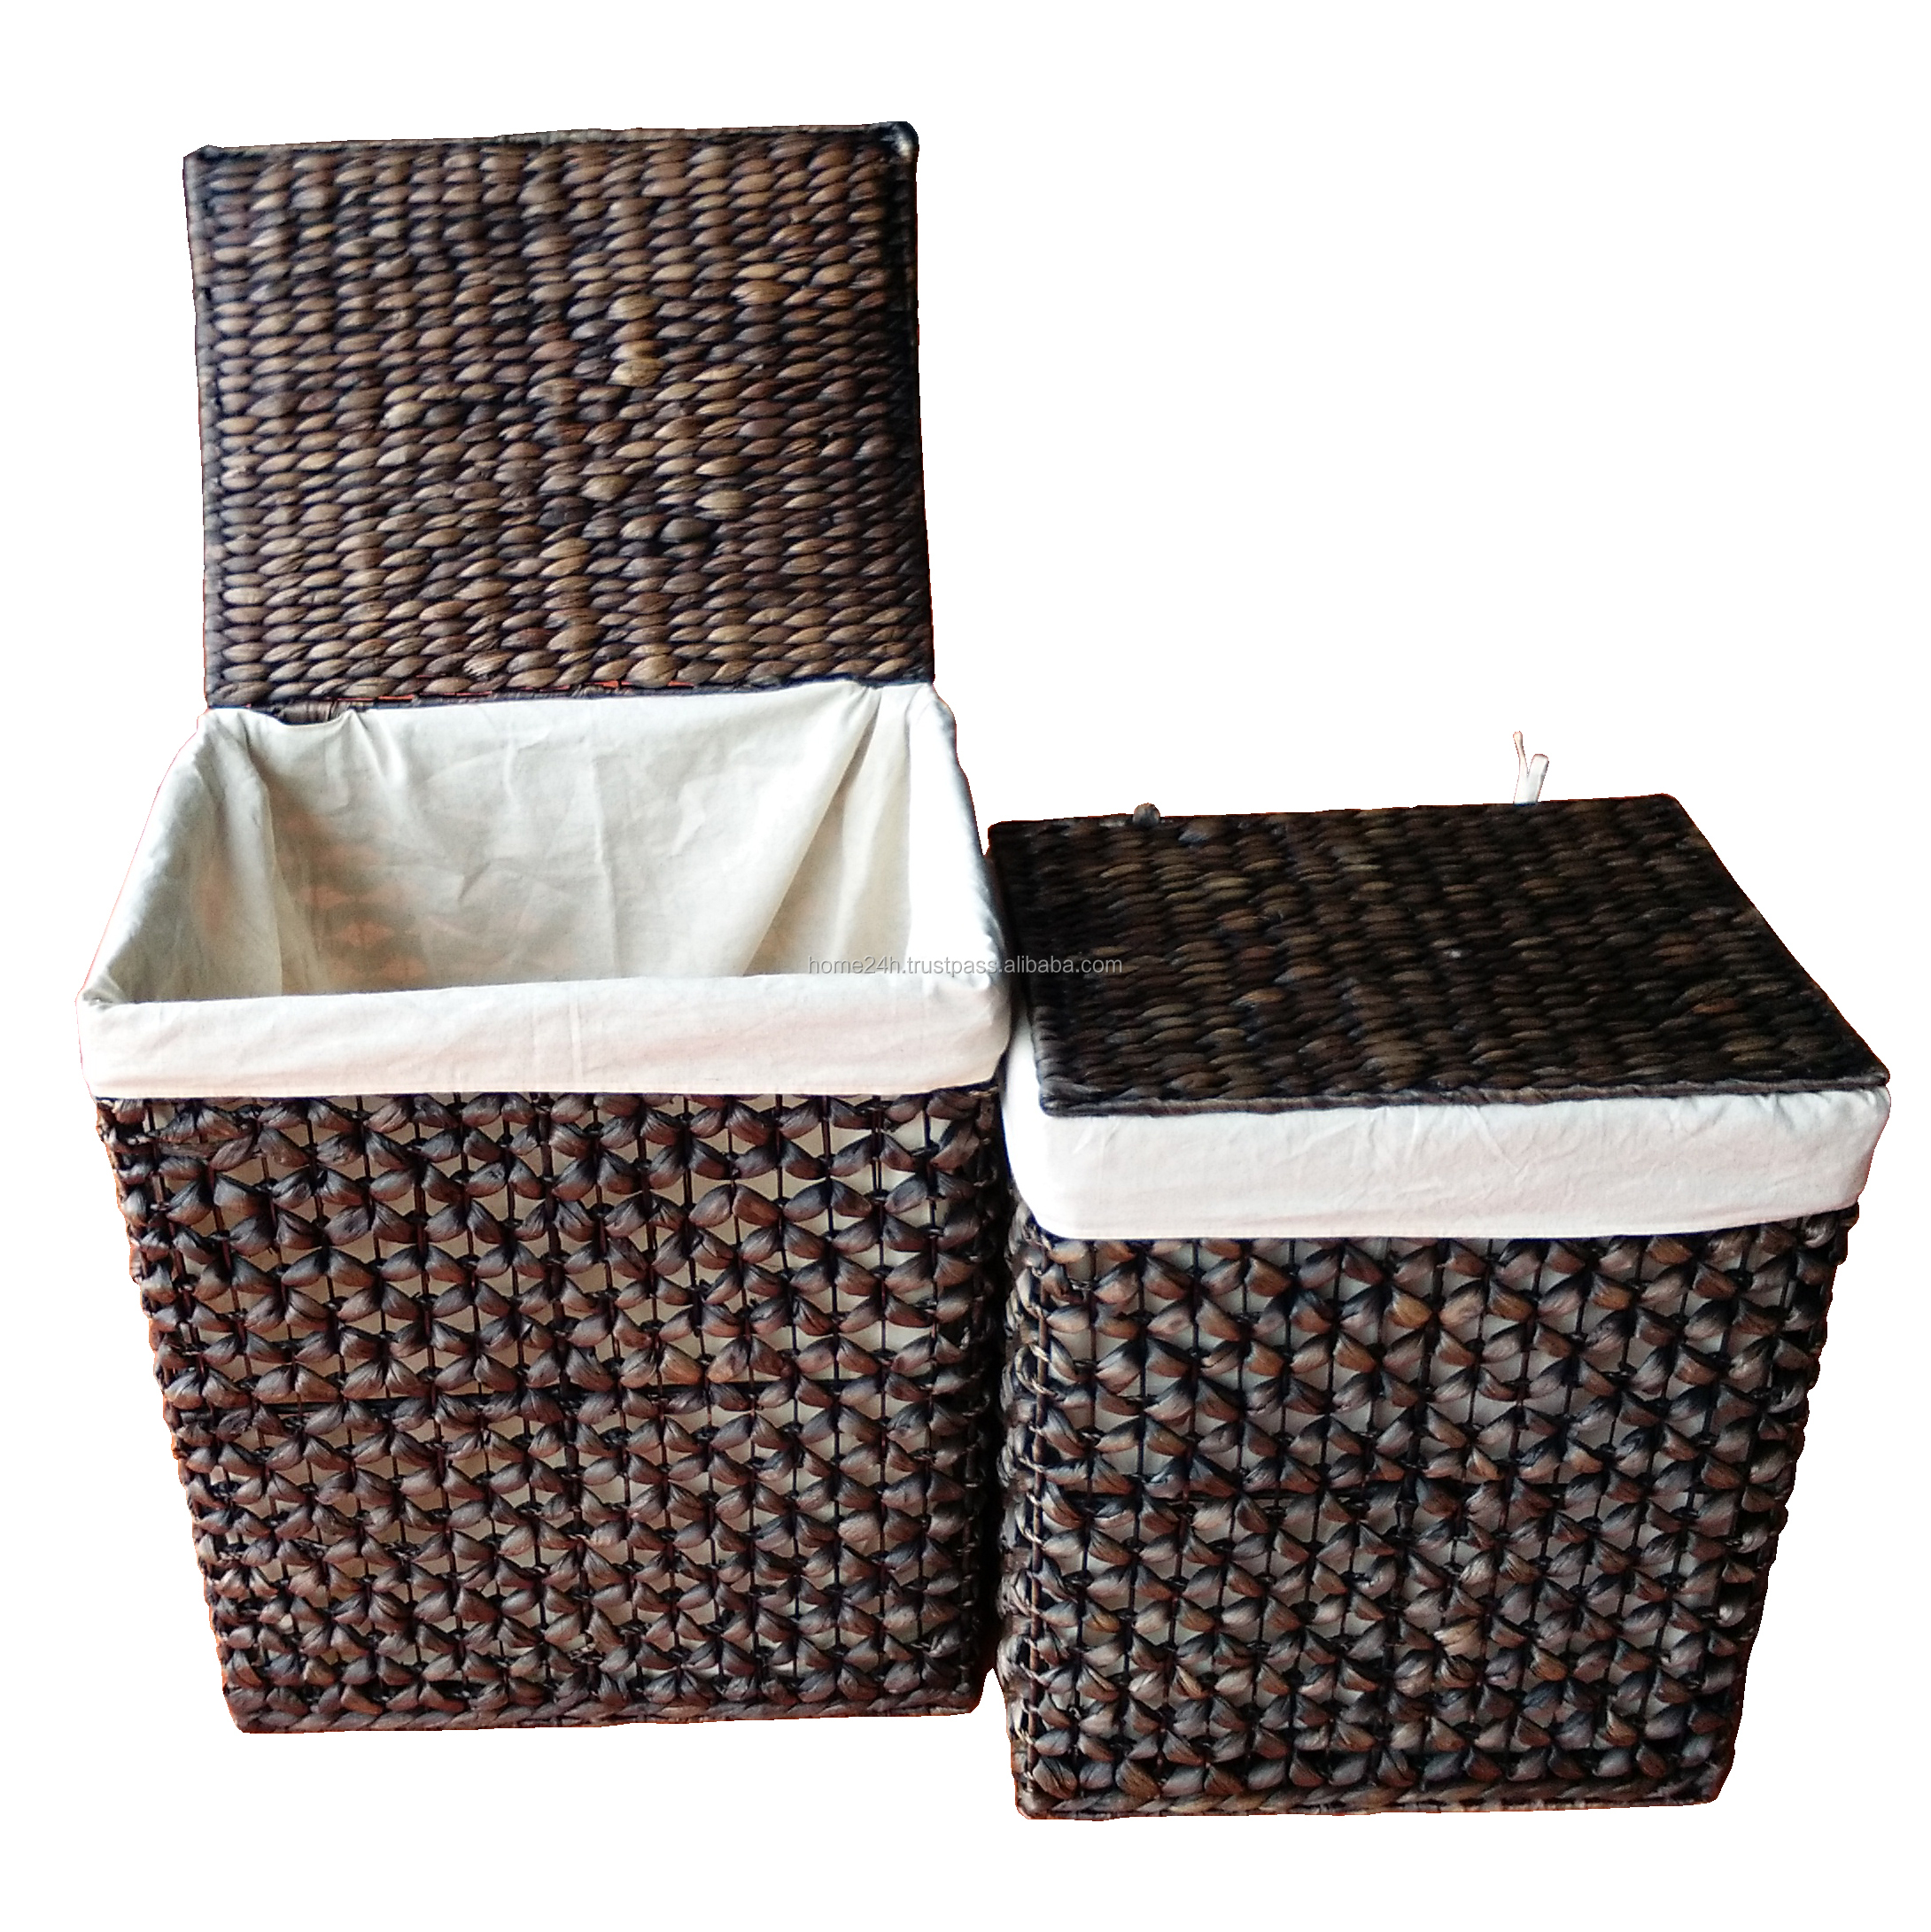 Water Hyacinth Wicker Dark Color Laundry Hamper Baskets With Lids Buy Wok Logs Basket Natural Log Basket Water Hyacinth New Product Home Basket Handmade Willow Baskets For Sale Product On Alibaba Com